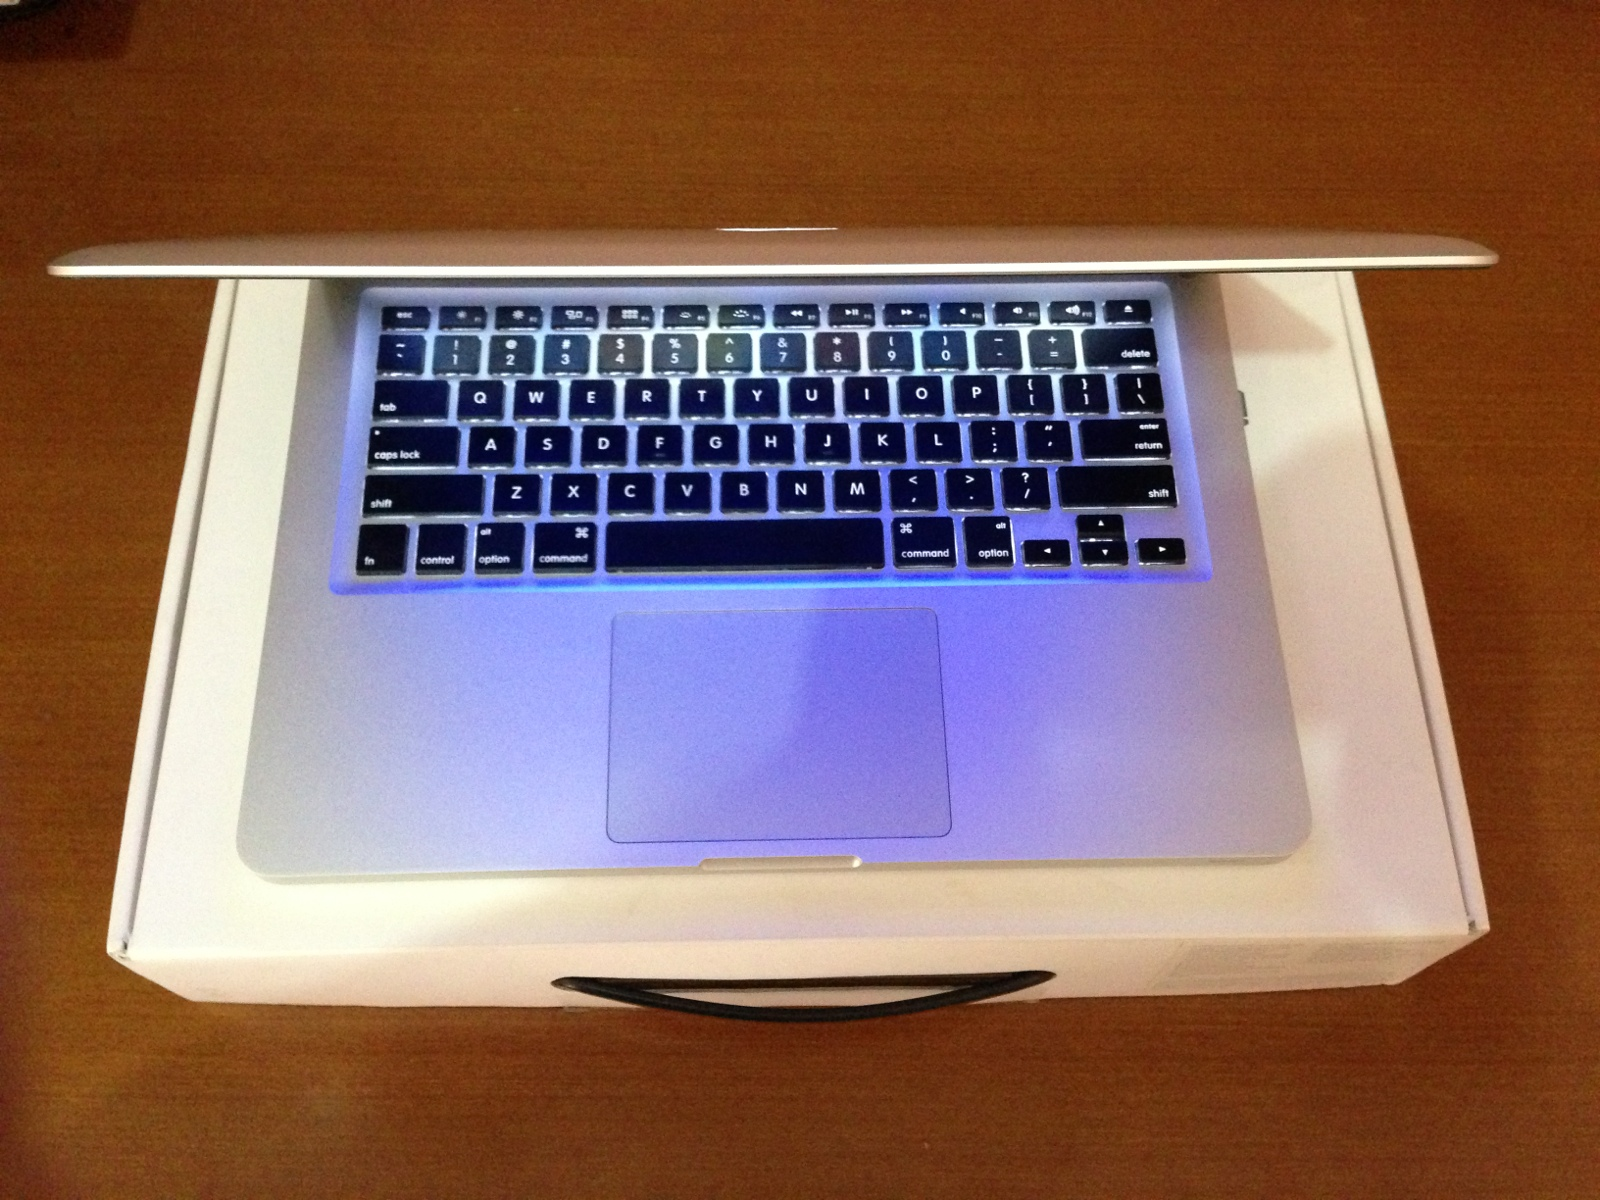 Jual Macbook Pro Second 15 Inch Retina Display Ssd 512 Mc976 Apple Md101 Silver Notebook Md103 Out Of Stock